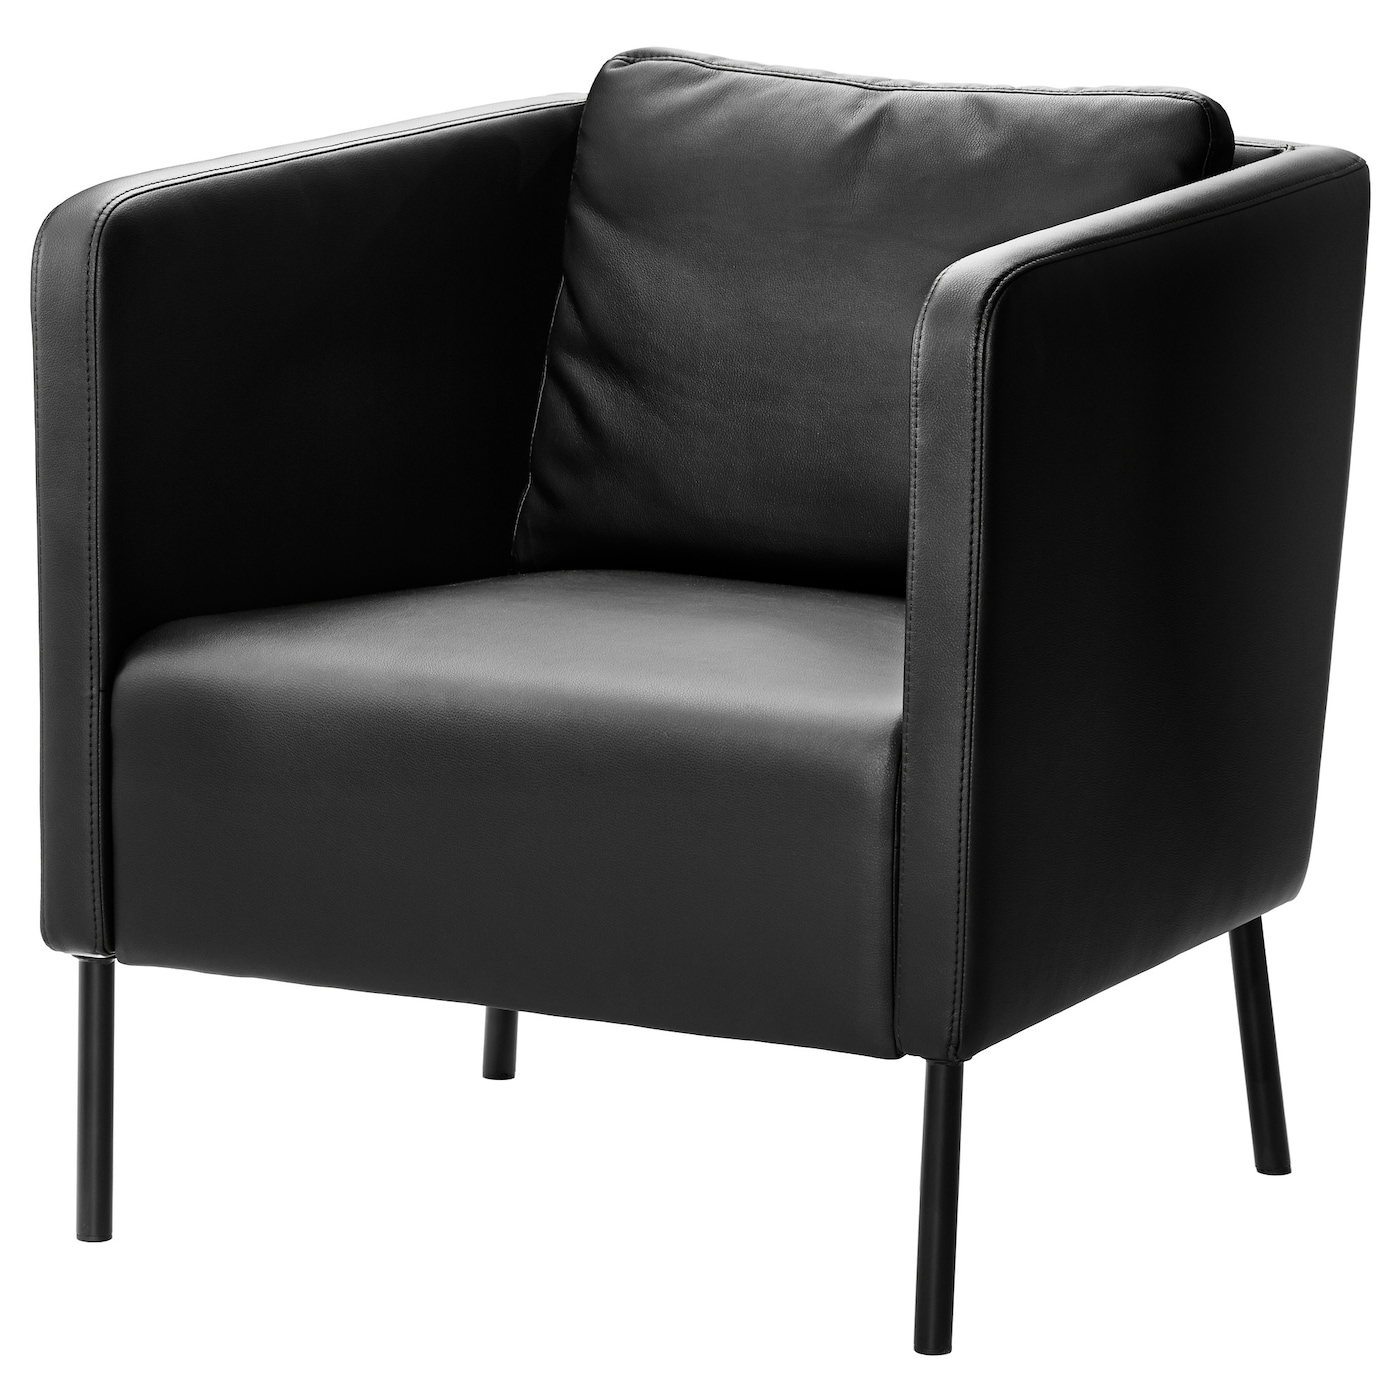 Ikea EkerÖ Armchair The Cover Is Easy To Keep Clean As It Can Be Wiped